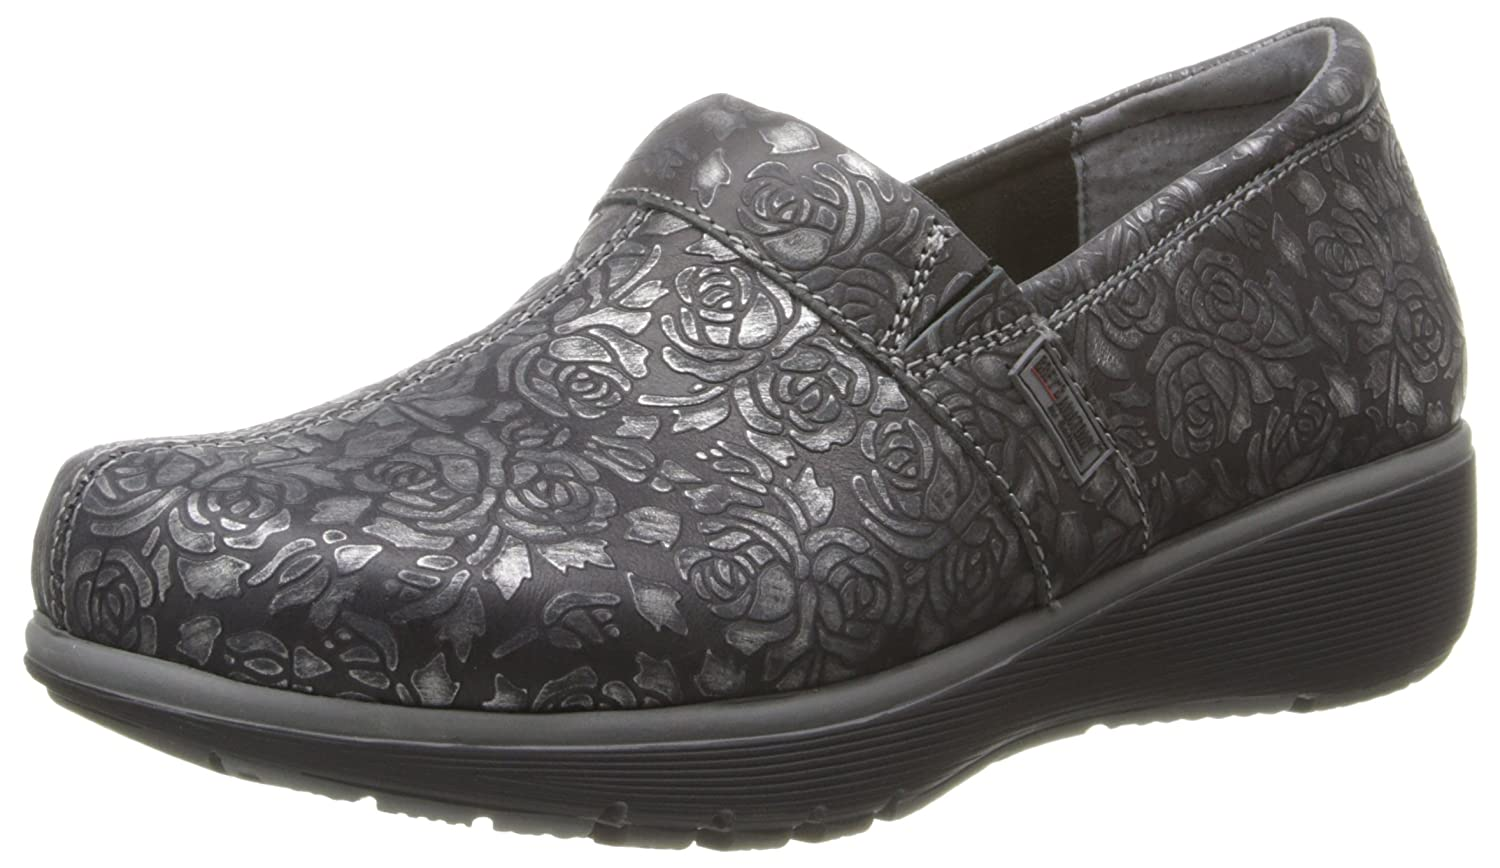 SoftWalk Women's Meredith Clog B00J0AGRK8 10 B(M) US|Black Met